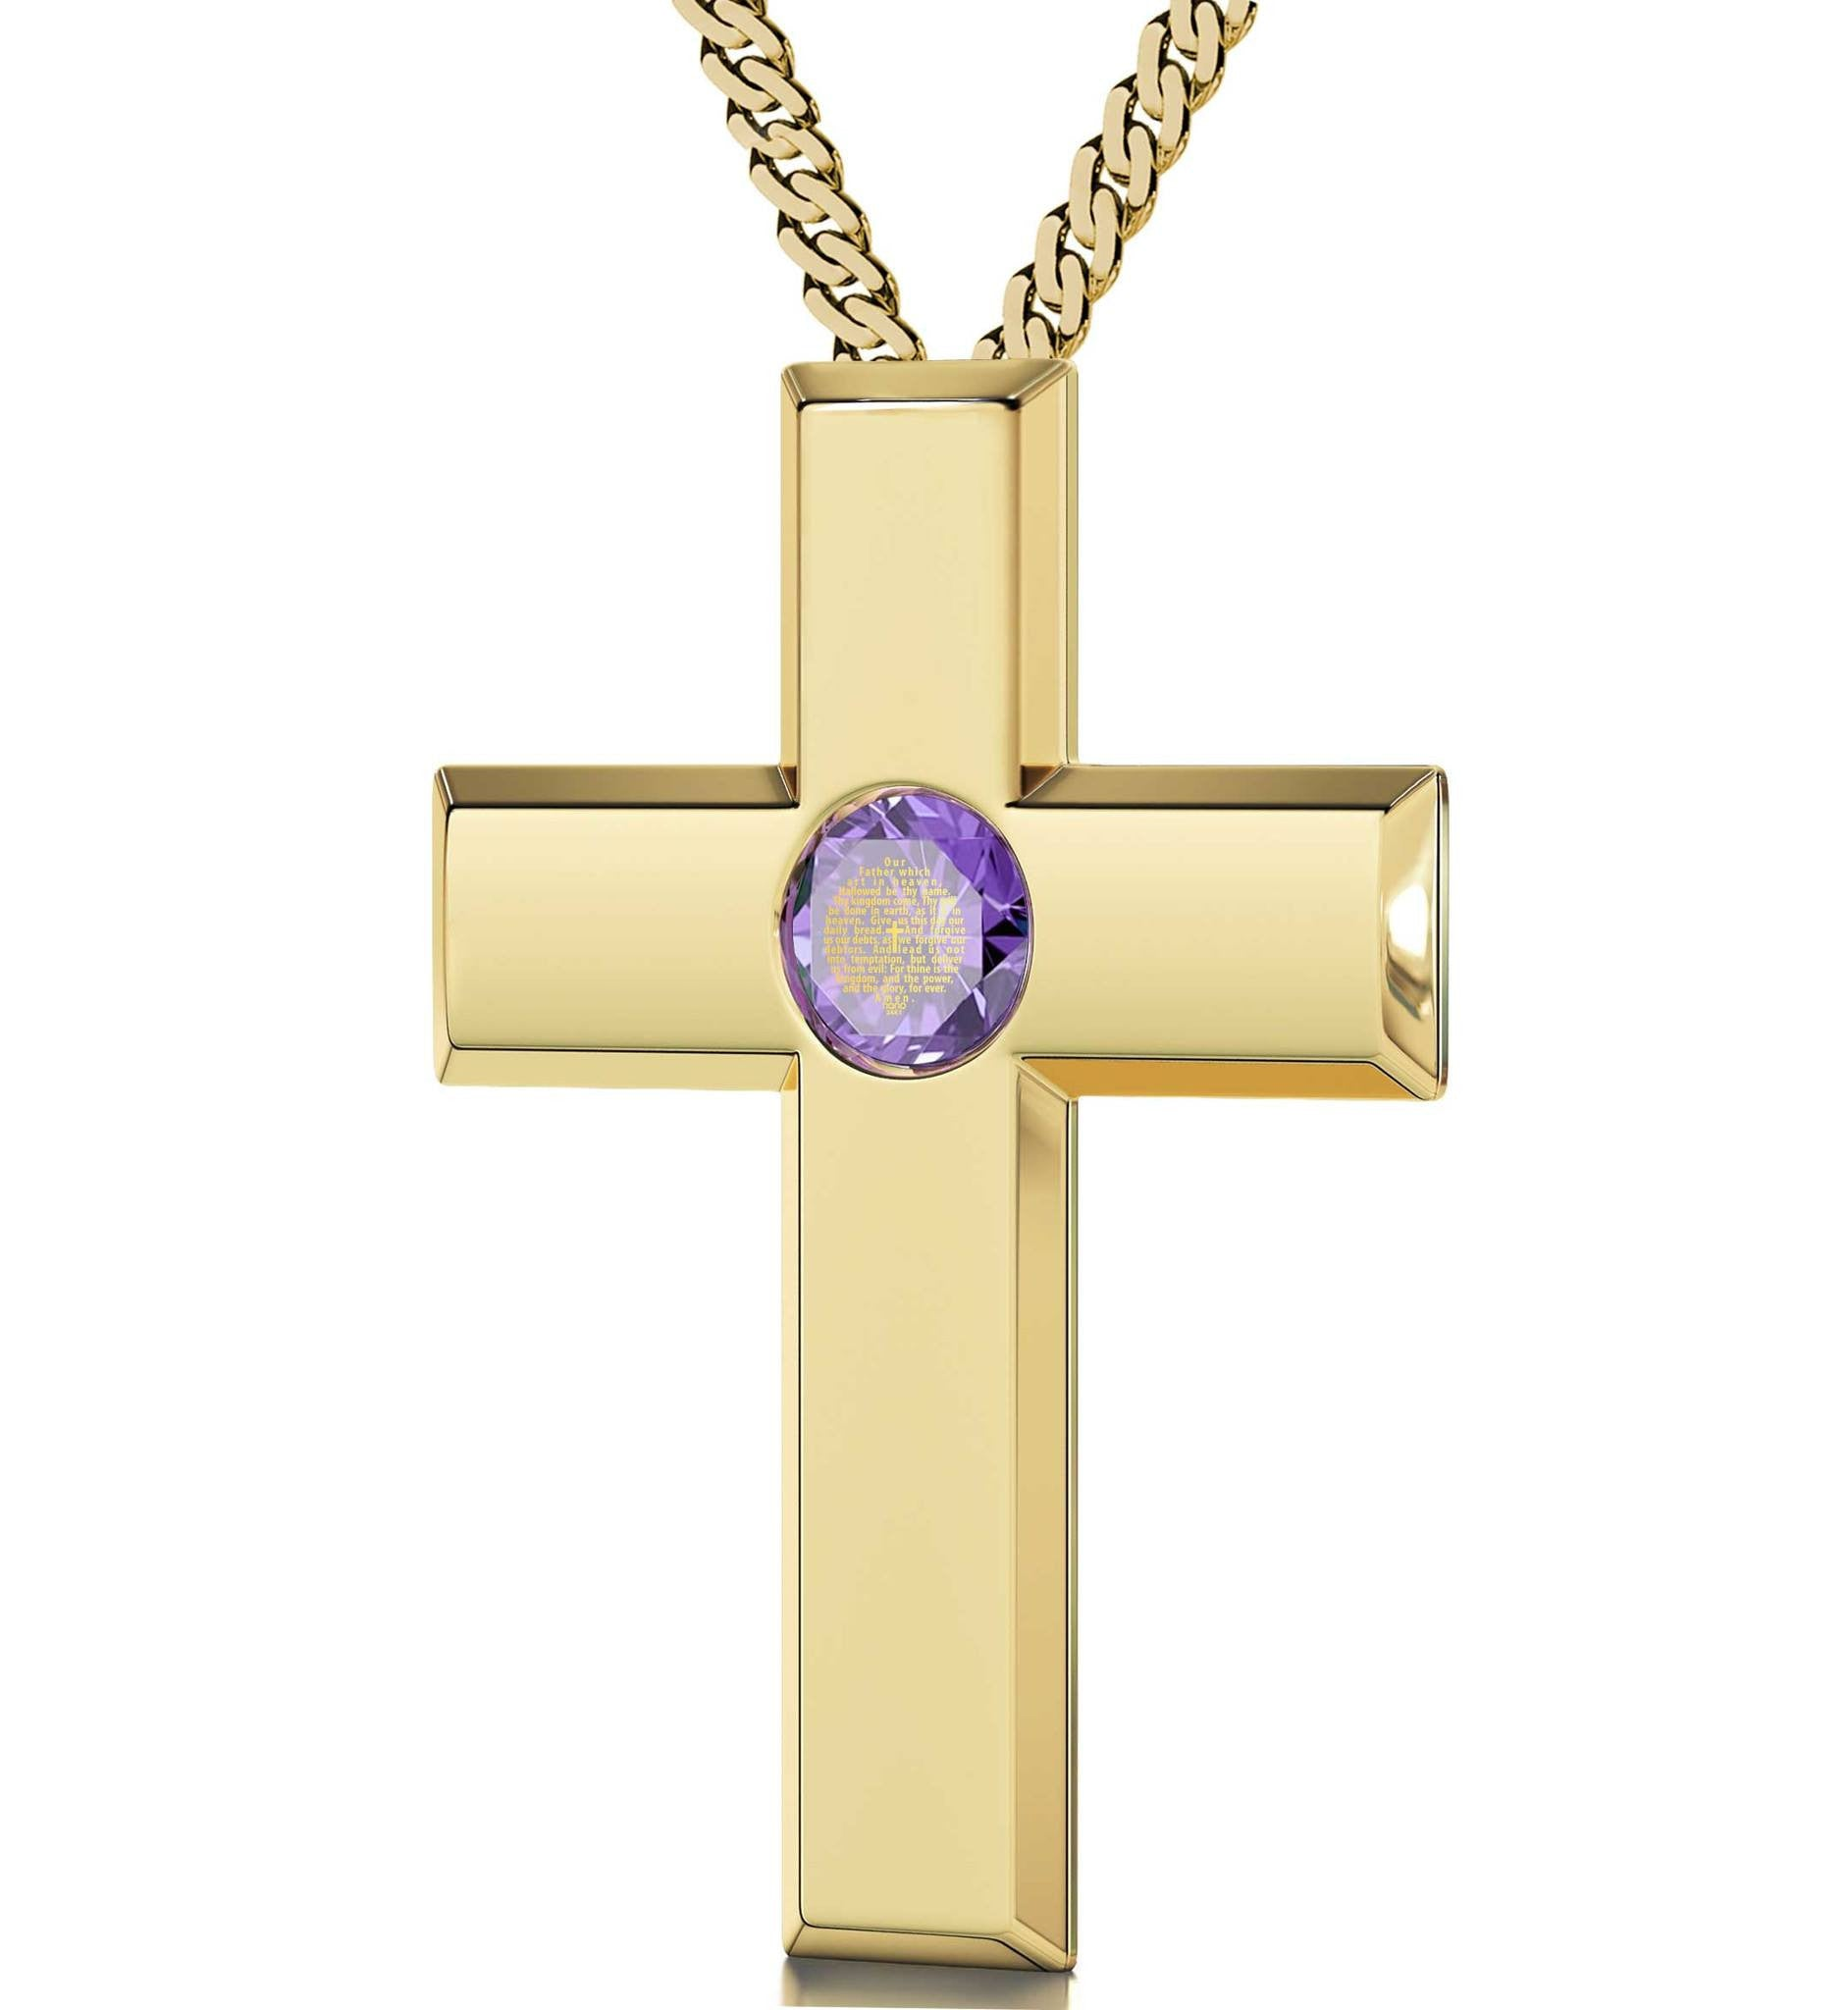 Lord's Prayer Kjv In 24k Imprint Cross Necklace For Girl Gifts For Pregnant Wife Purple Jewelry